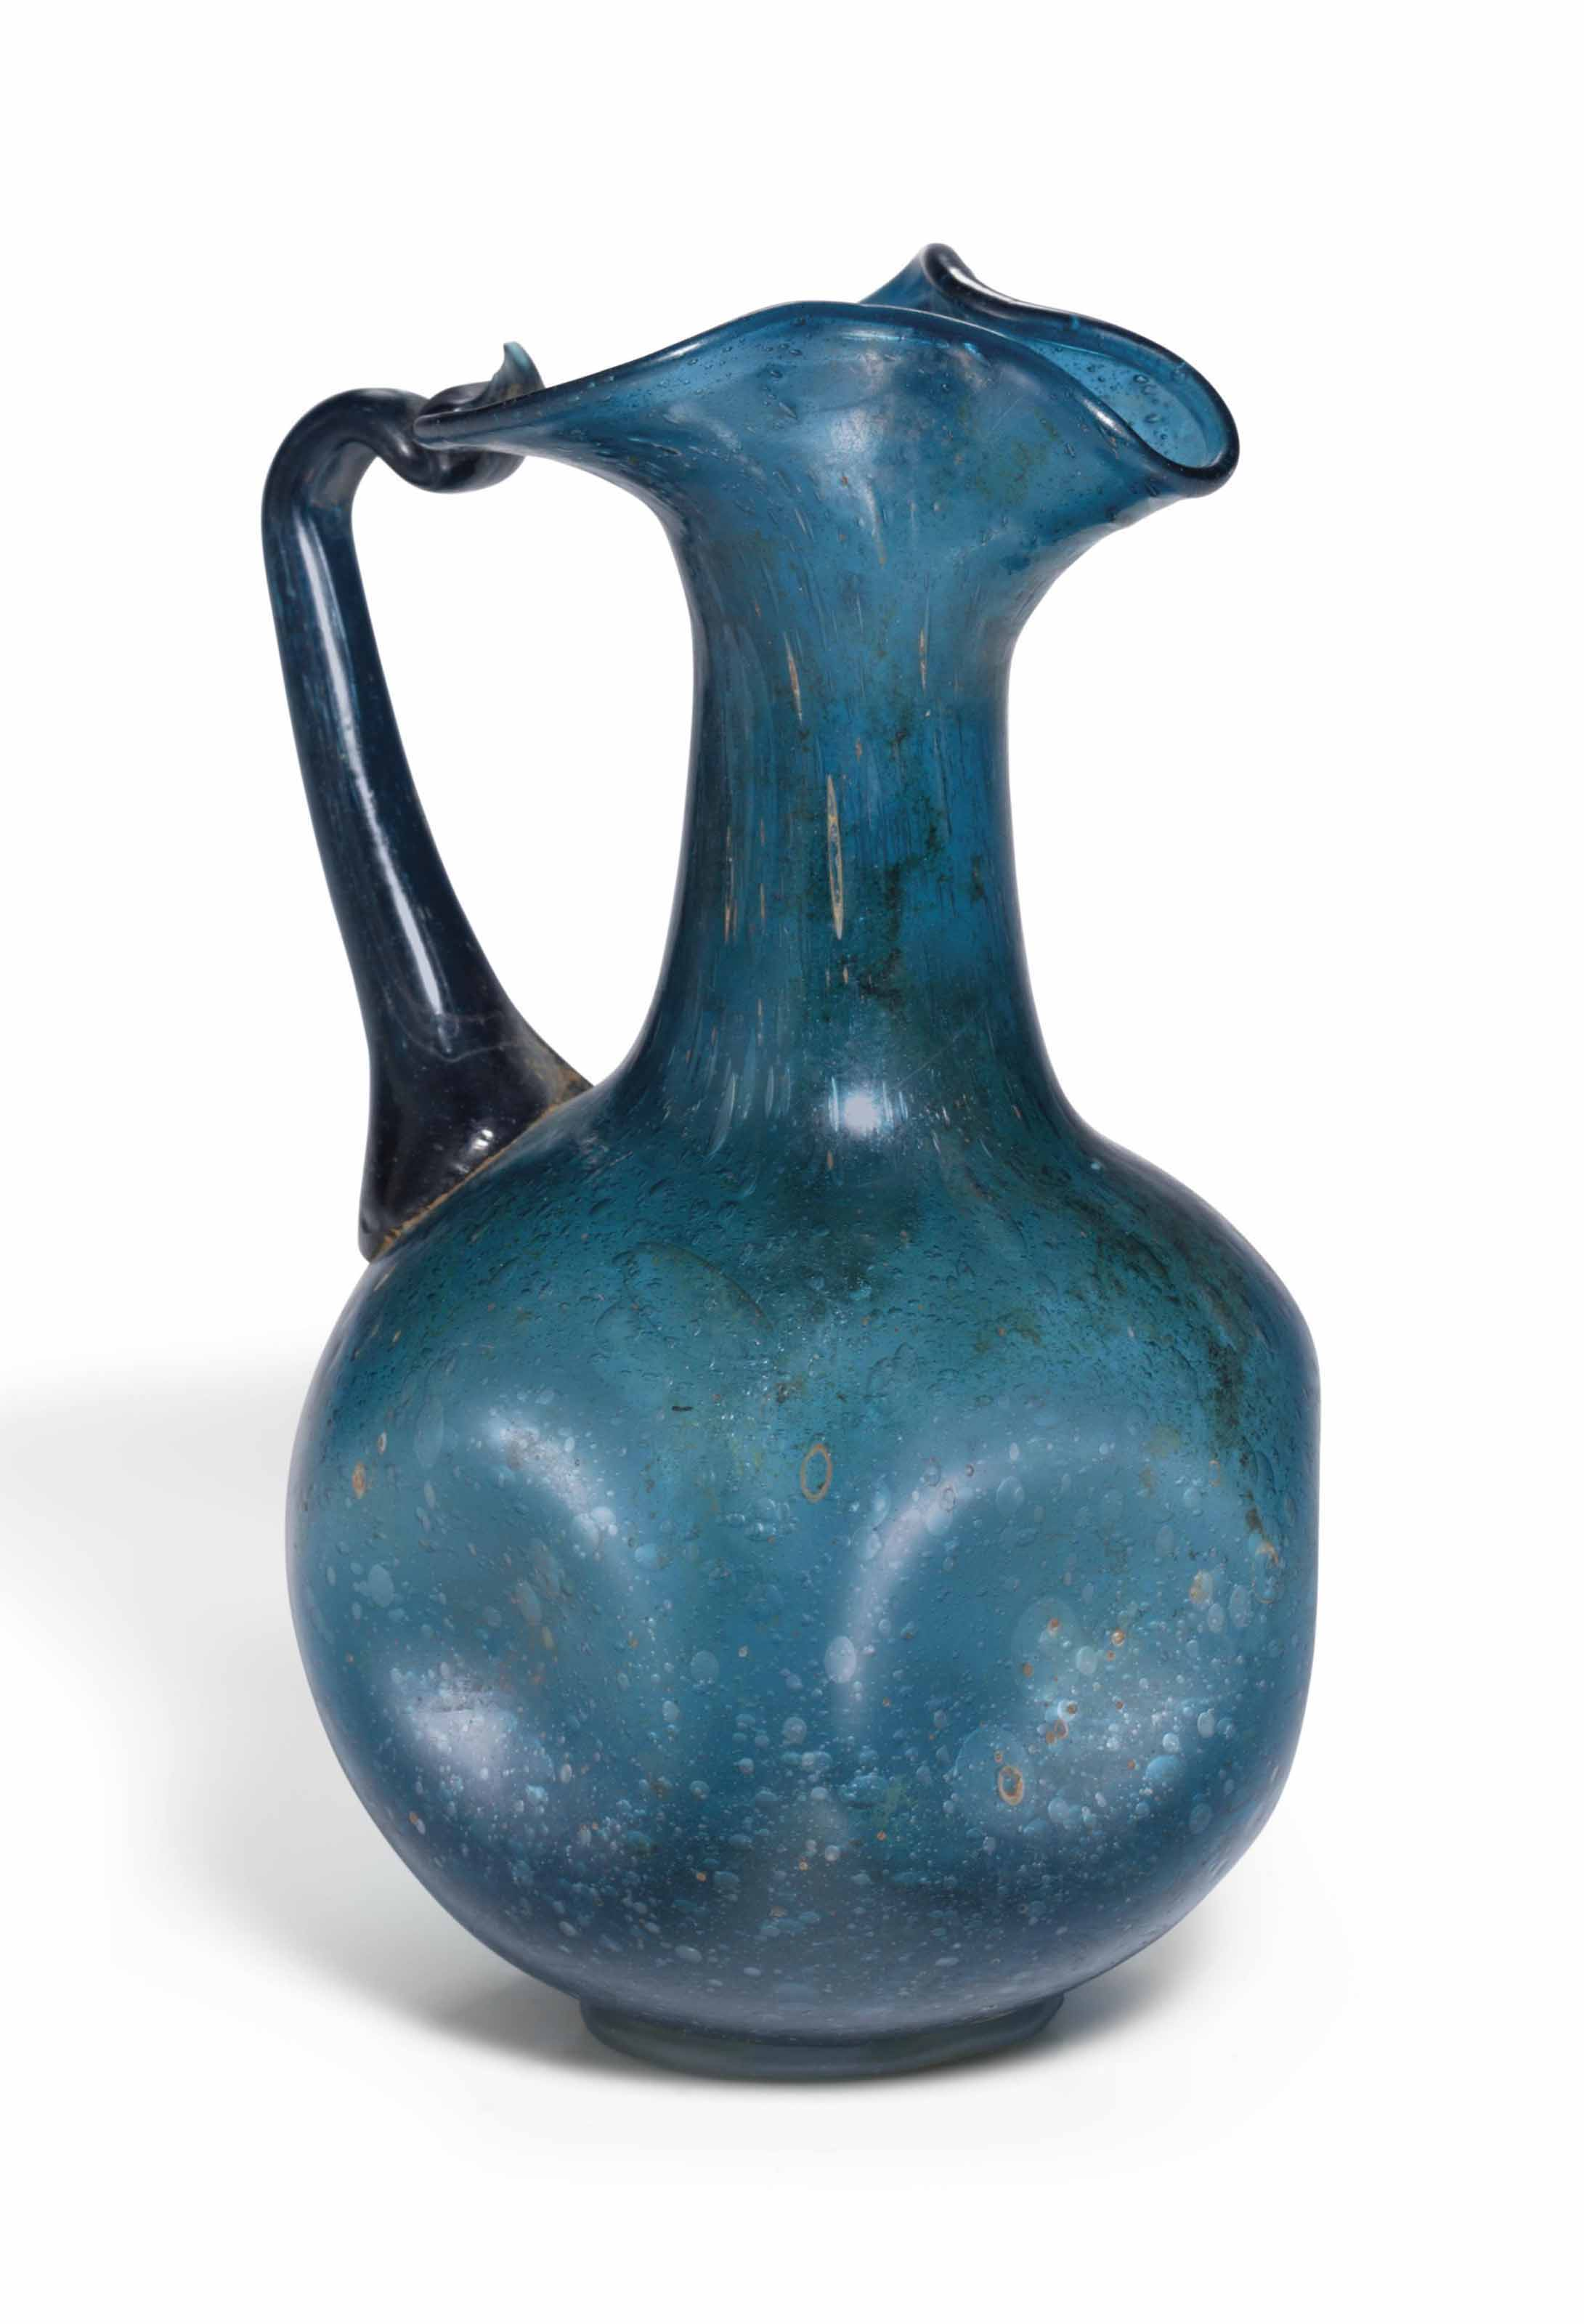 A ROMAN BLUE GLASS JUG